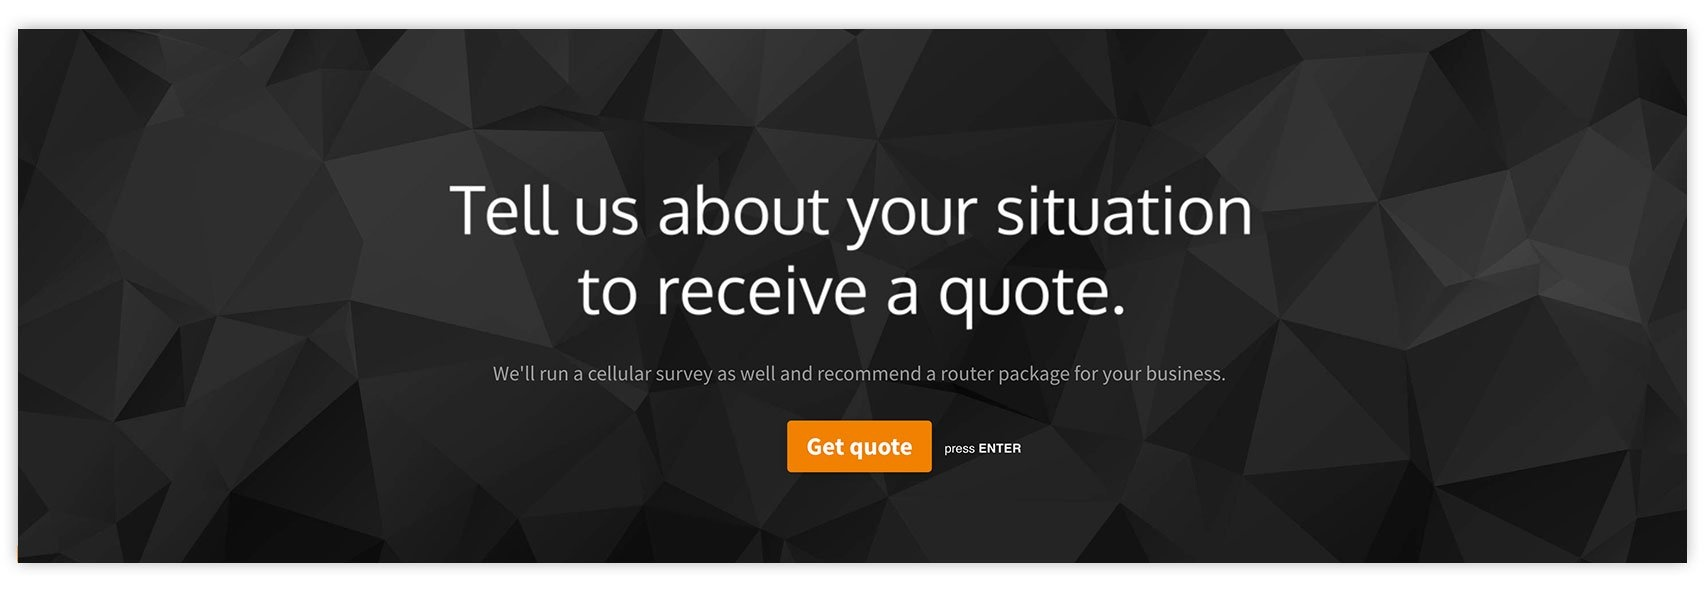 Tell us about your situation to receive a quote